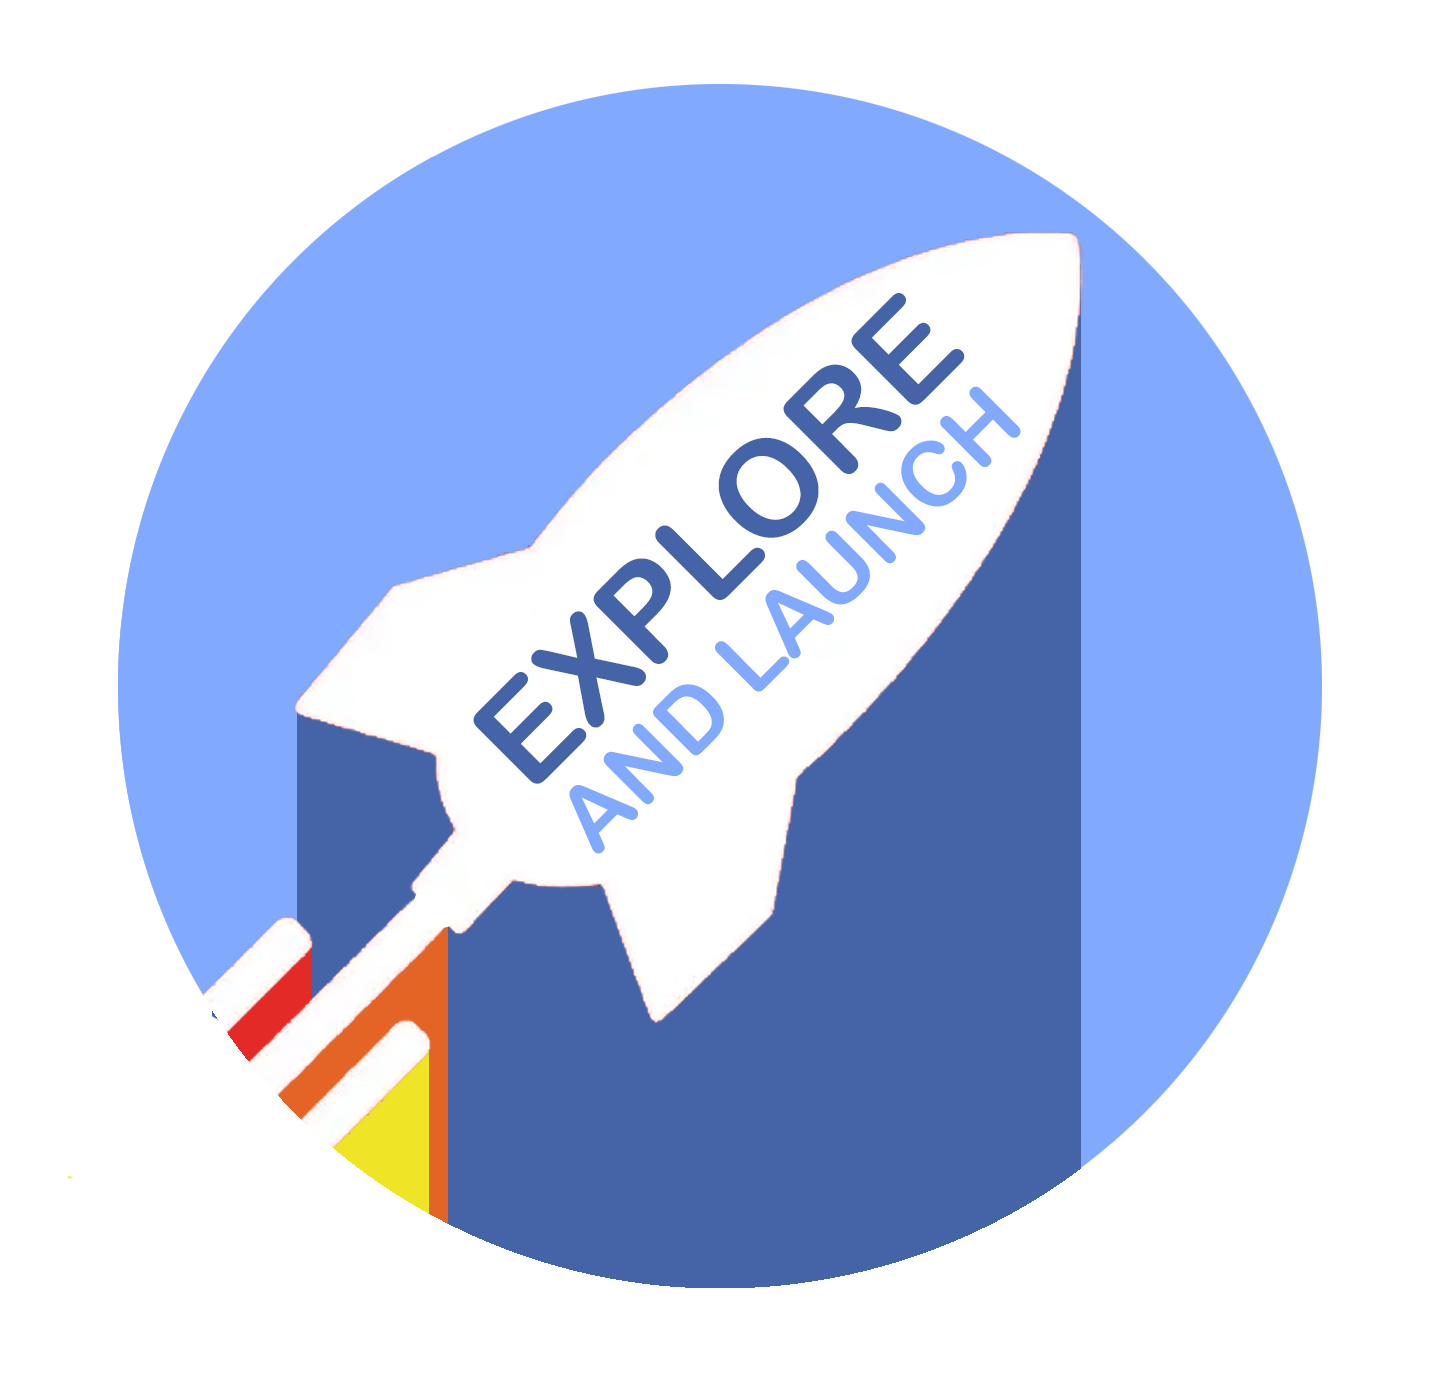 Explore and Launch Logo